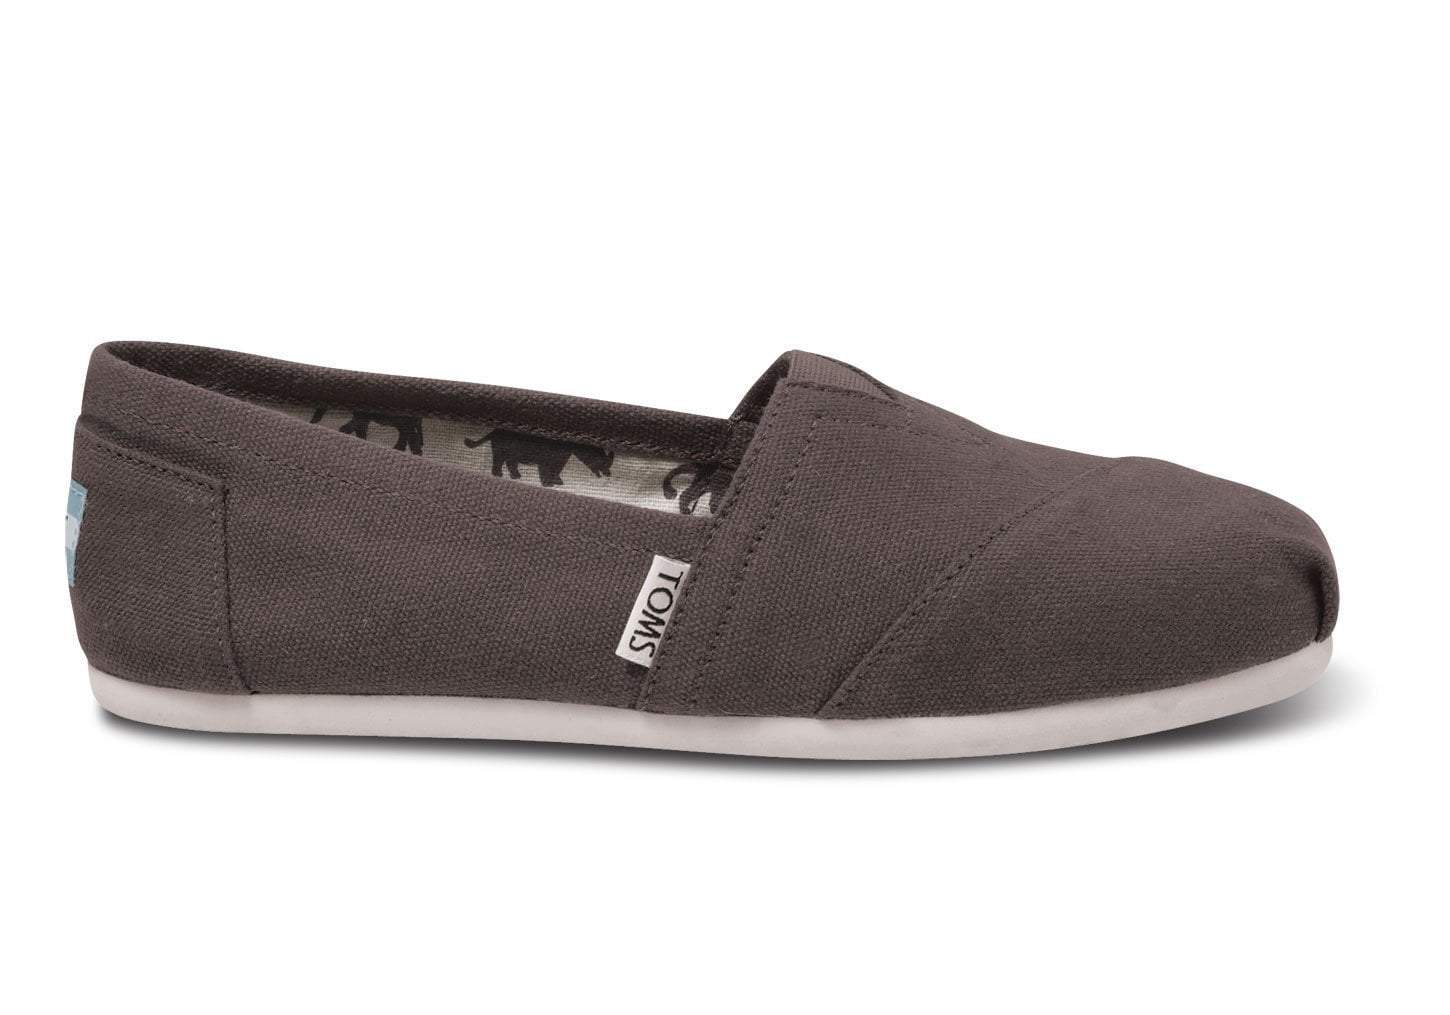 Toms Shoes Women's Shoes Toms Women's Classic Slip On - Ash || David's Clothing